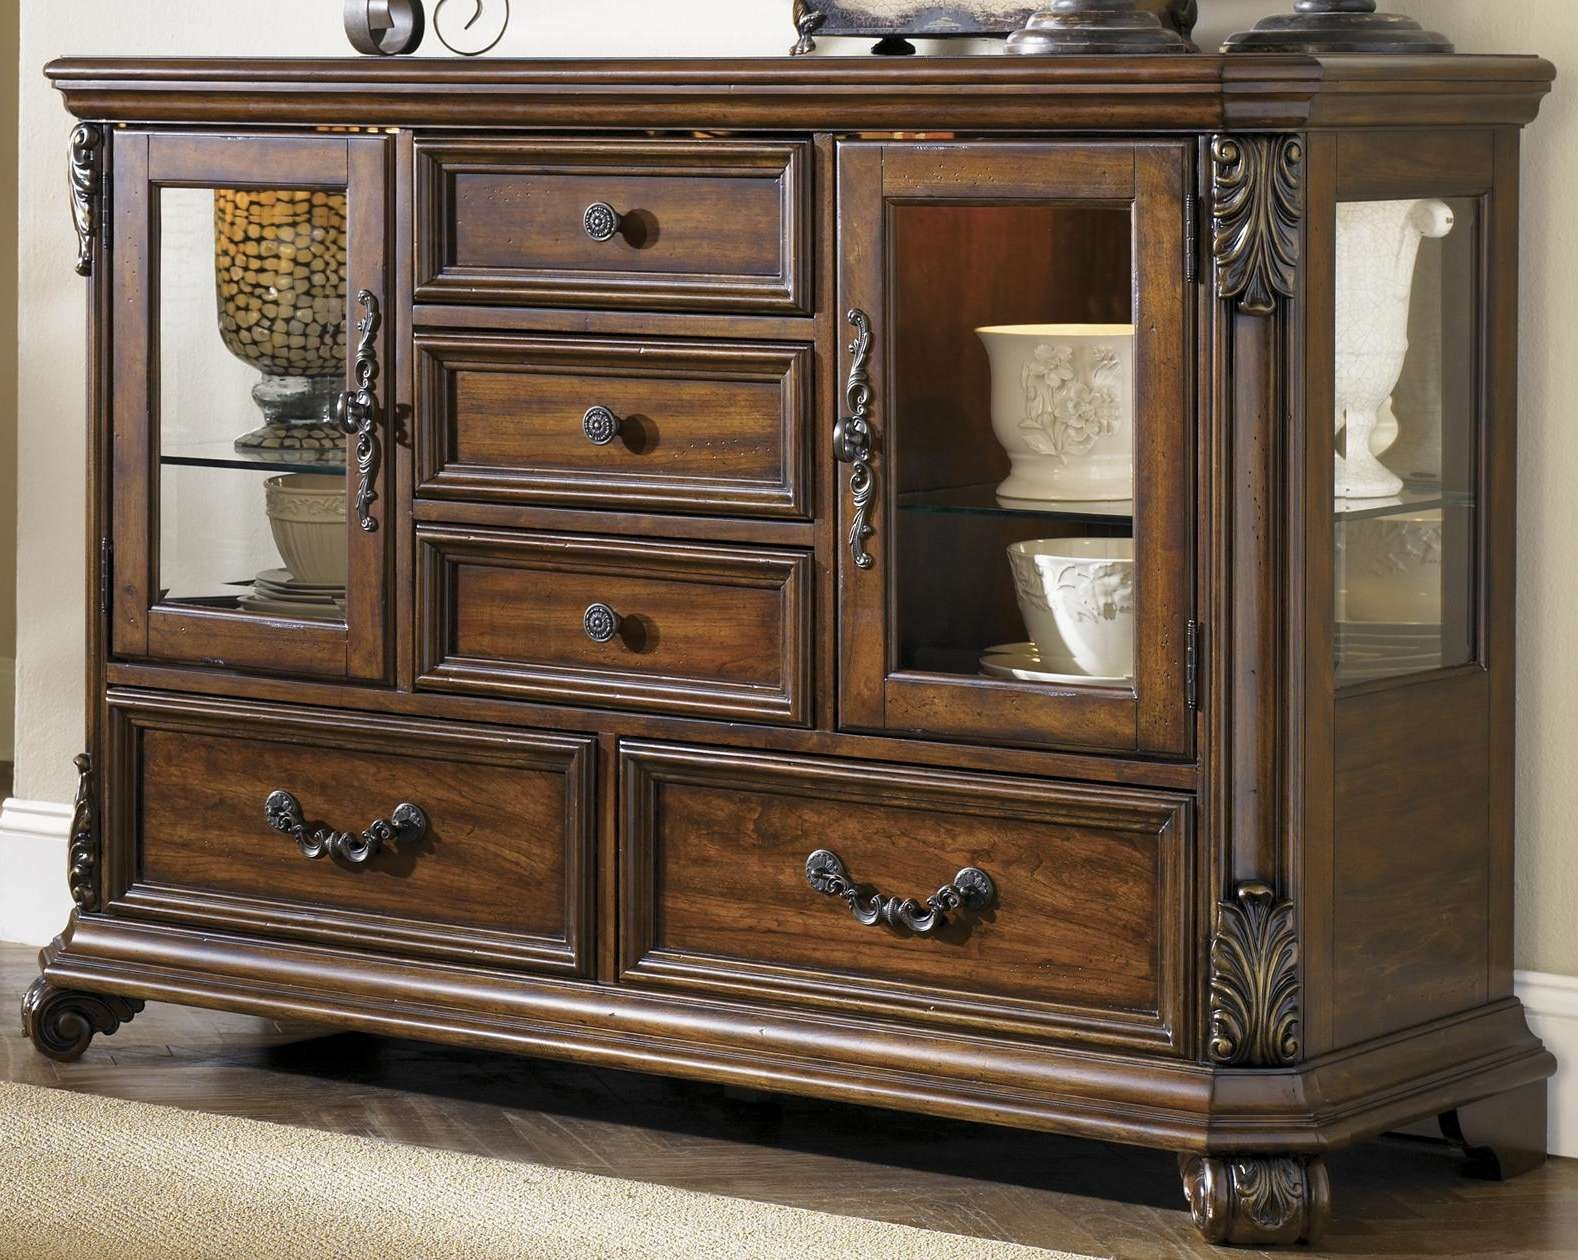 Glass Door Buffet Dining Serverliberty Furniture | Wolf And In Server Sideboards Furniture (View 12 of 20)